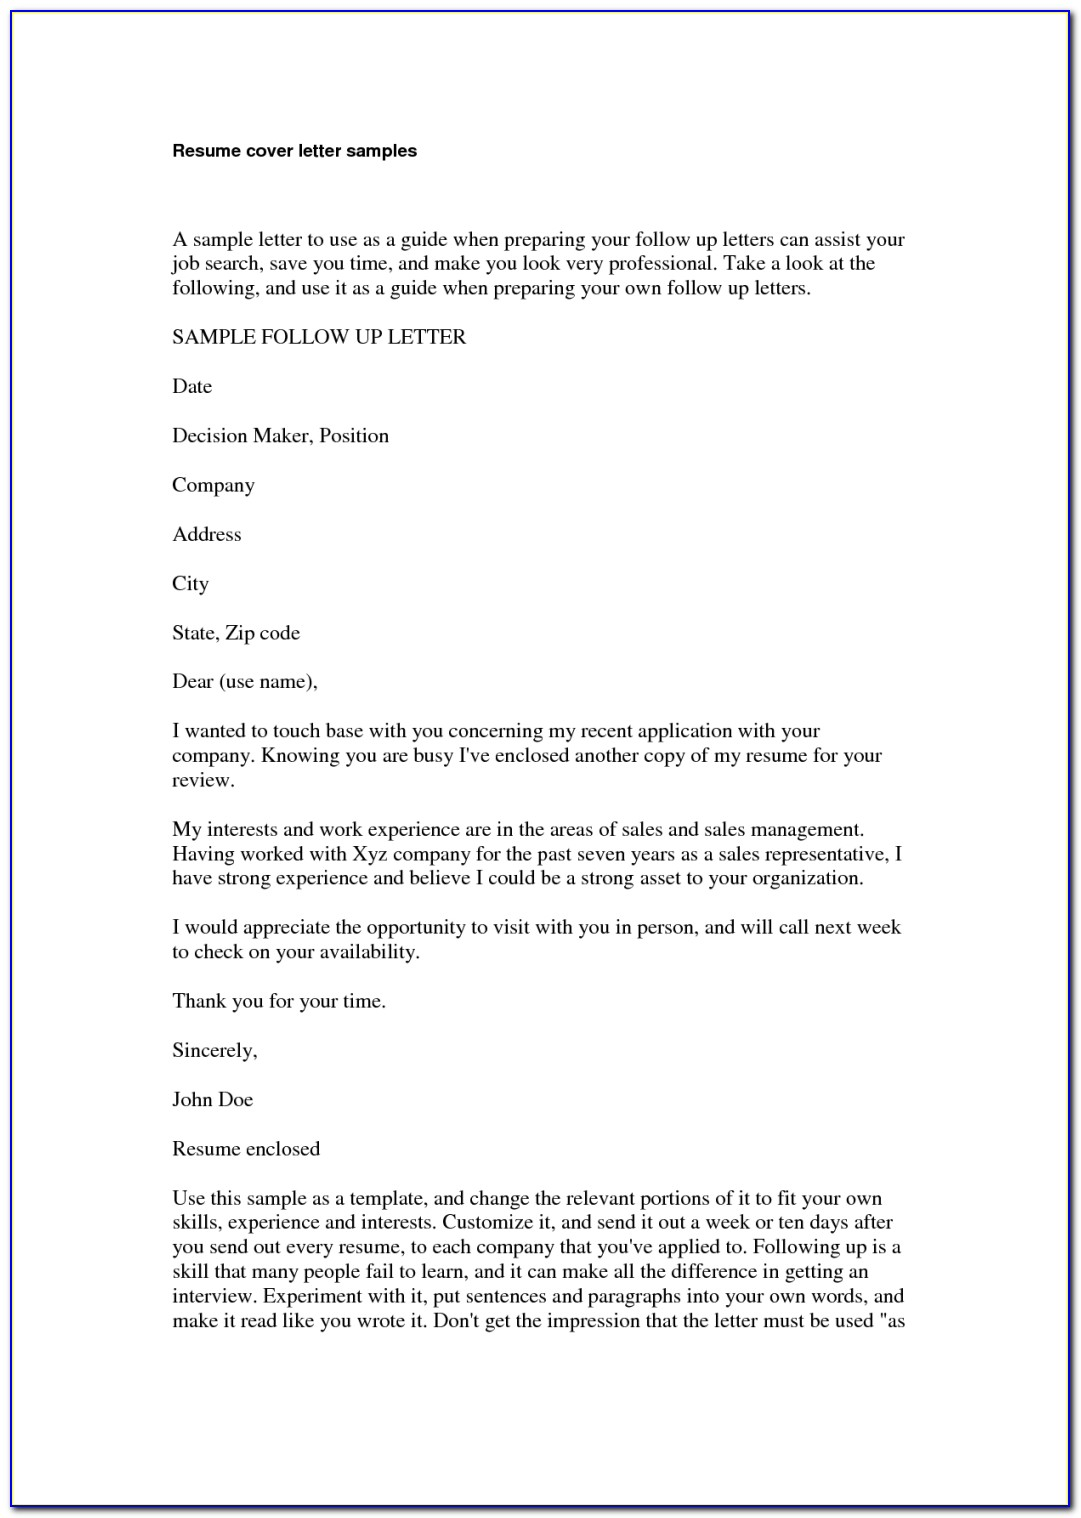 Sample Resume And Cover Letter Vincegray2014